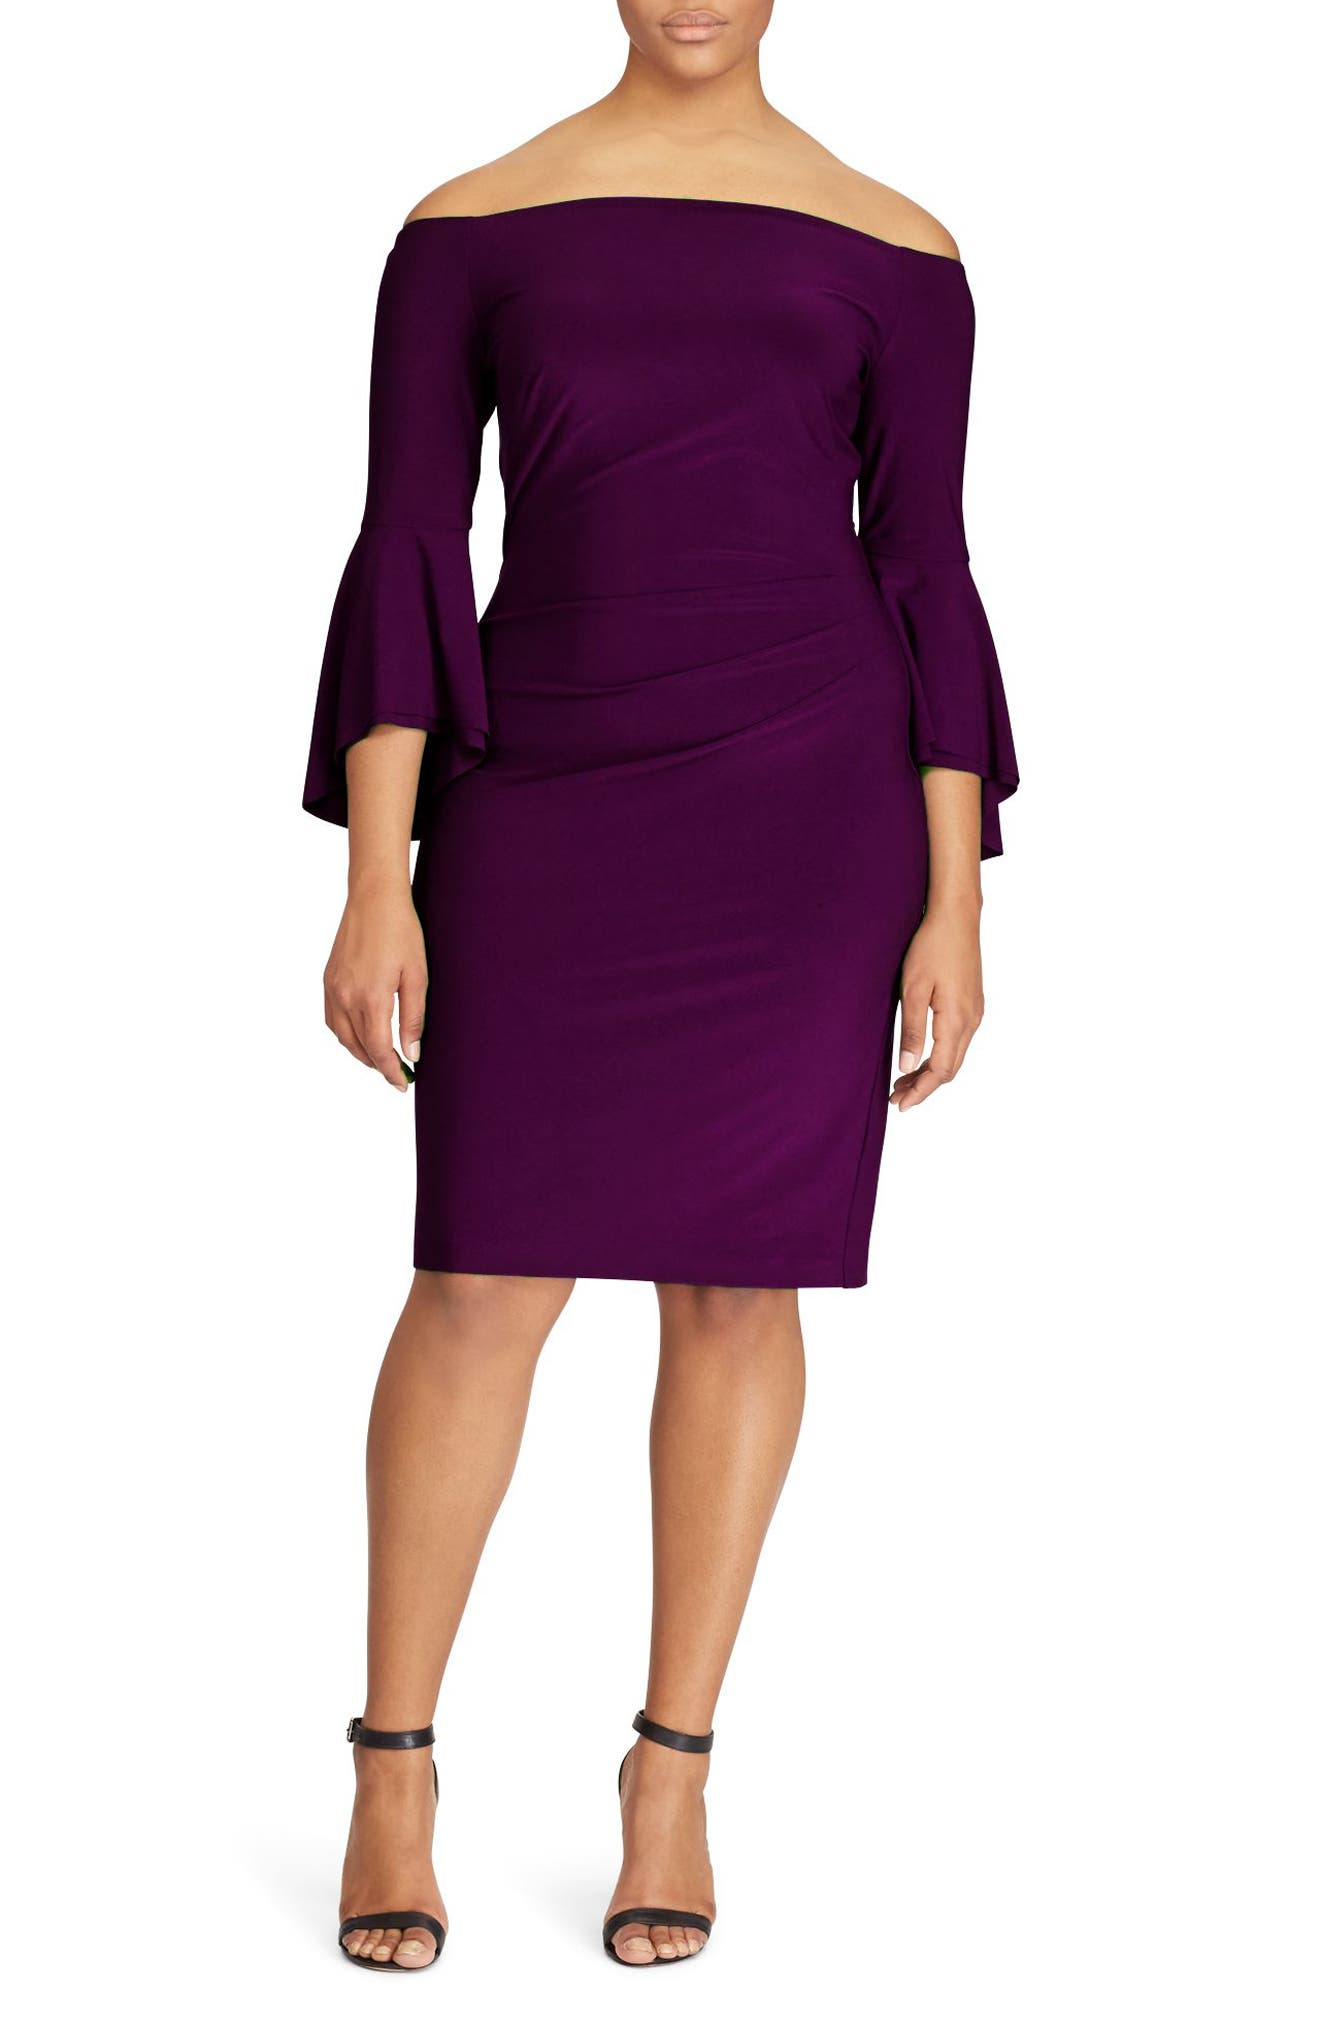 Bell Sleeve Sheath Dress,                         Main,                         color, 500